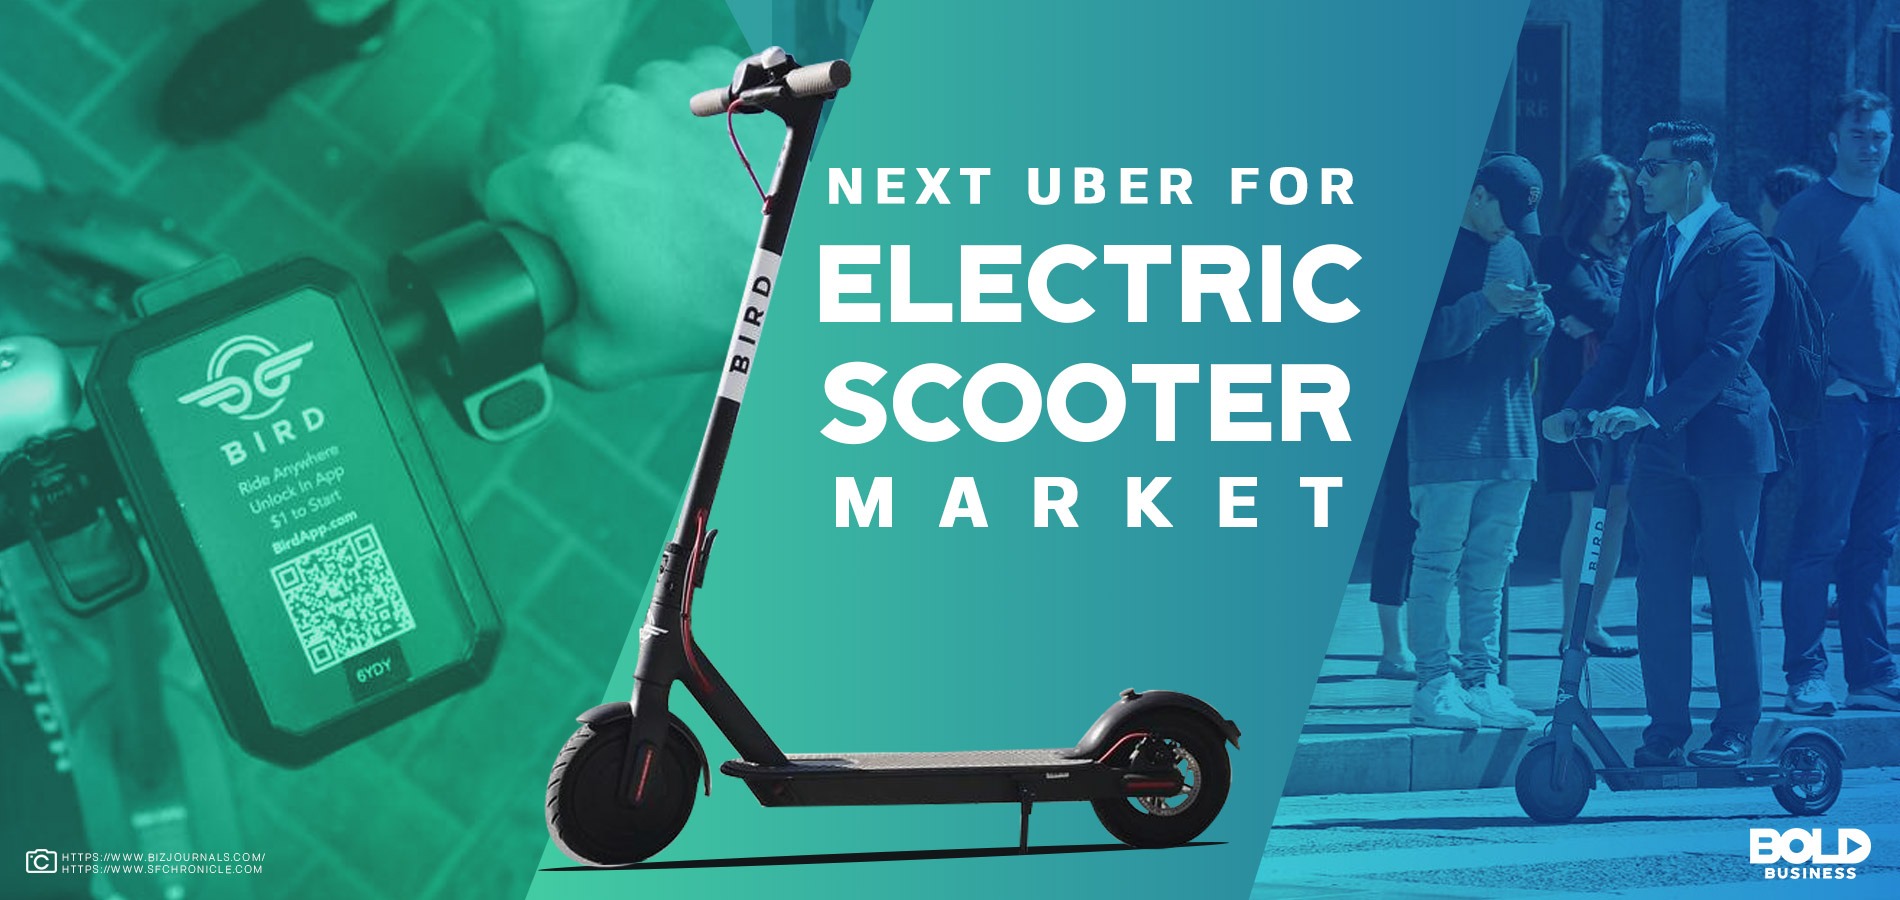 Feature image showing bird scooter, man riding scooter, and text